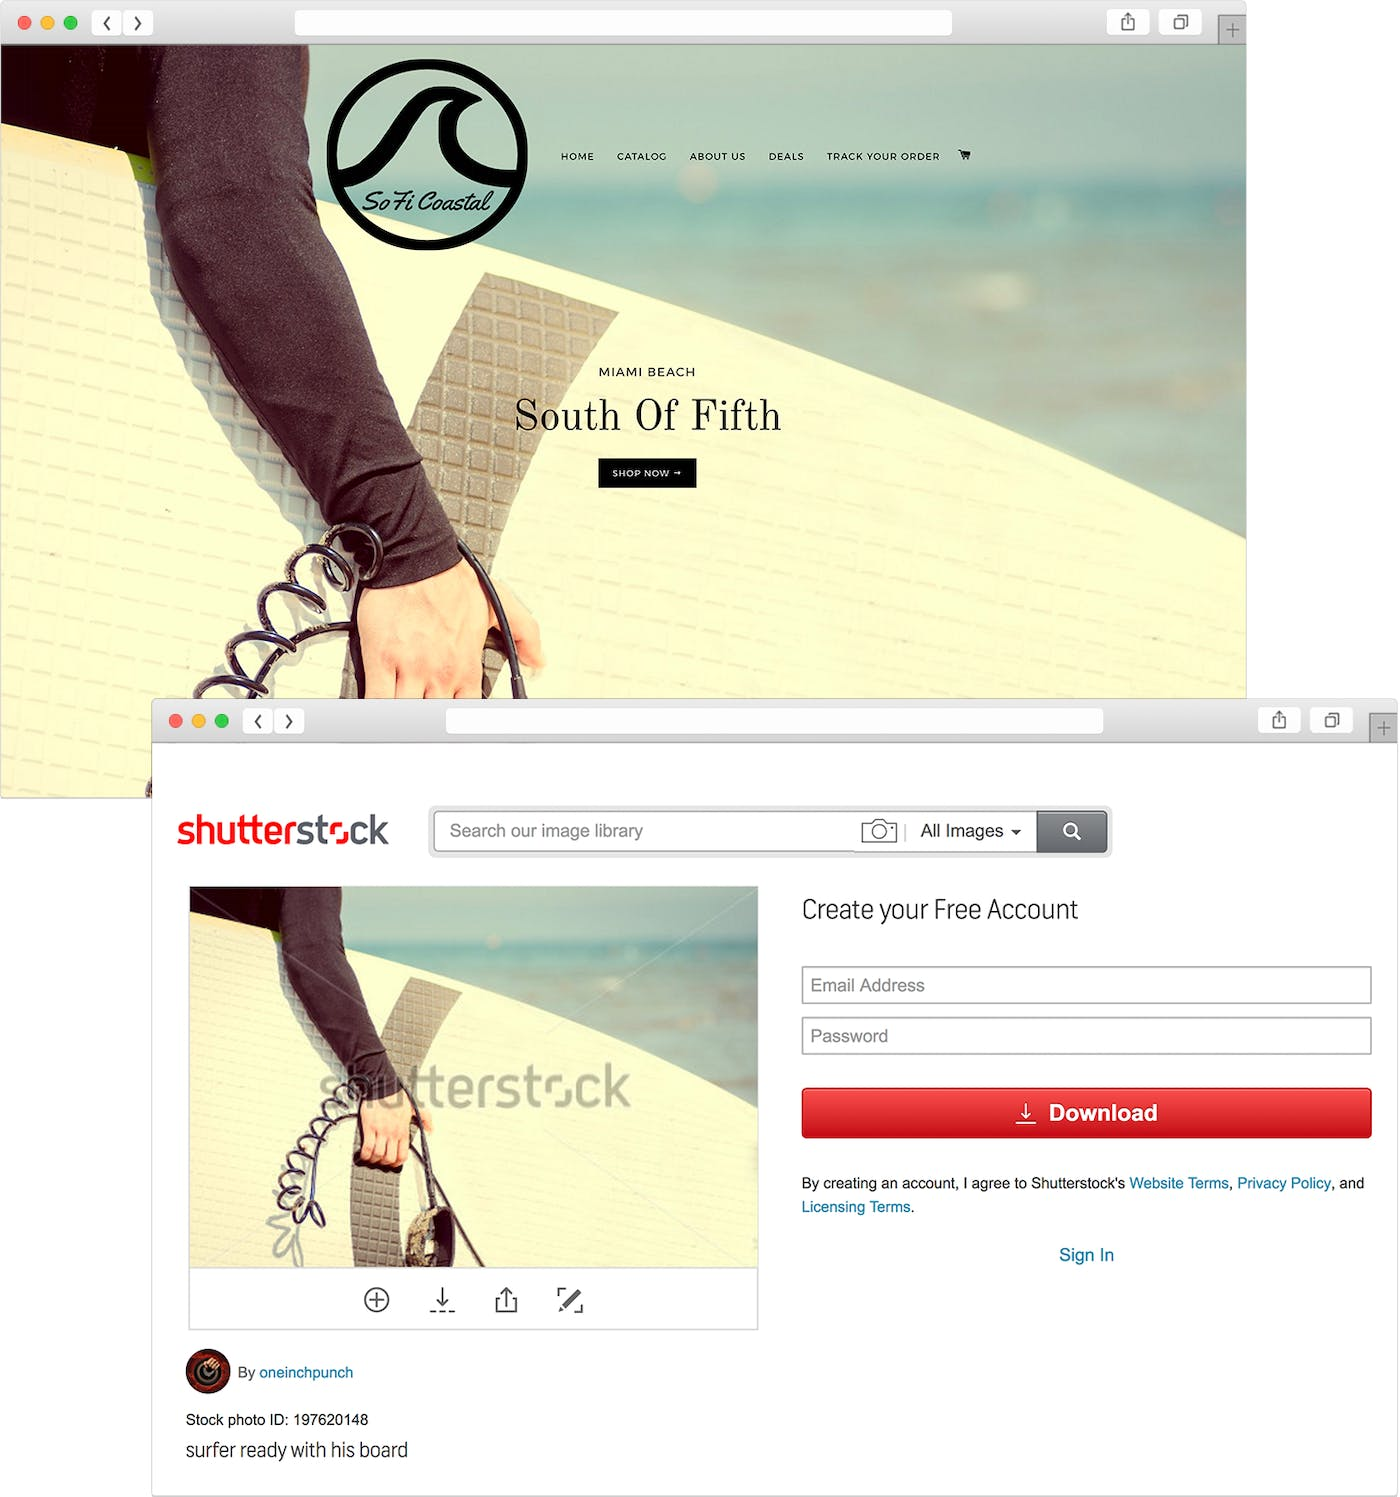 f8e1ea0869 The header image of Soficoastal's site is a royalty-free stock image of a  surfer from Shutterstock. (Folsom and Co.'s header image, meanwhile, ...